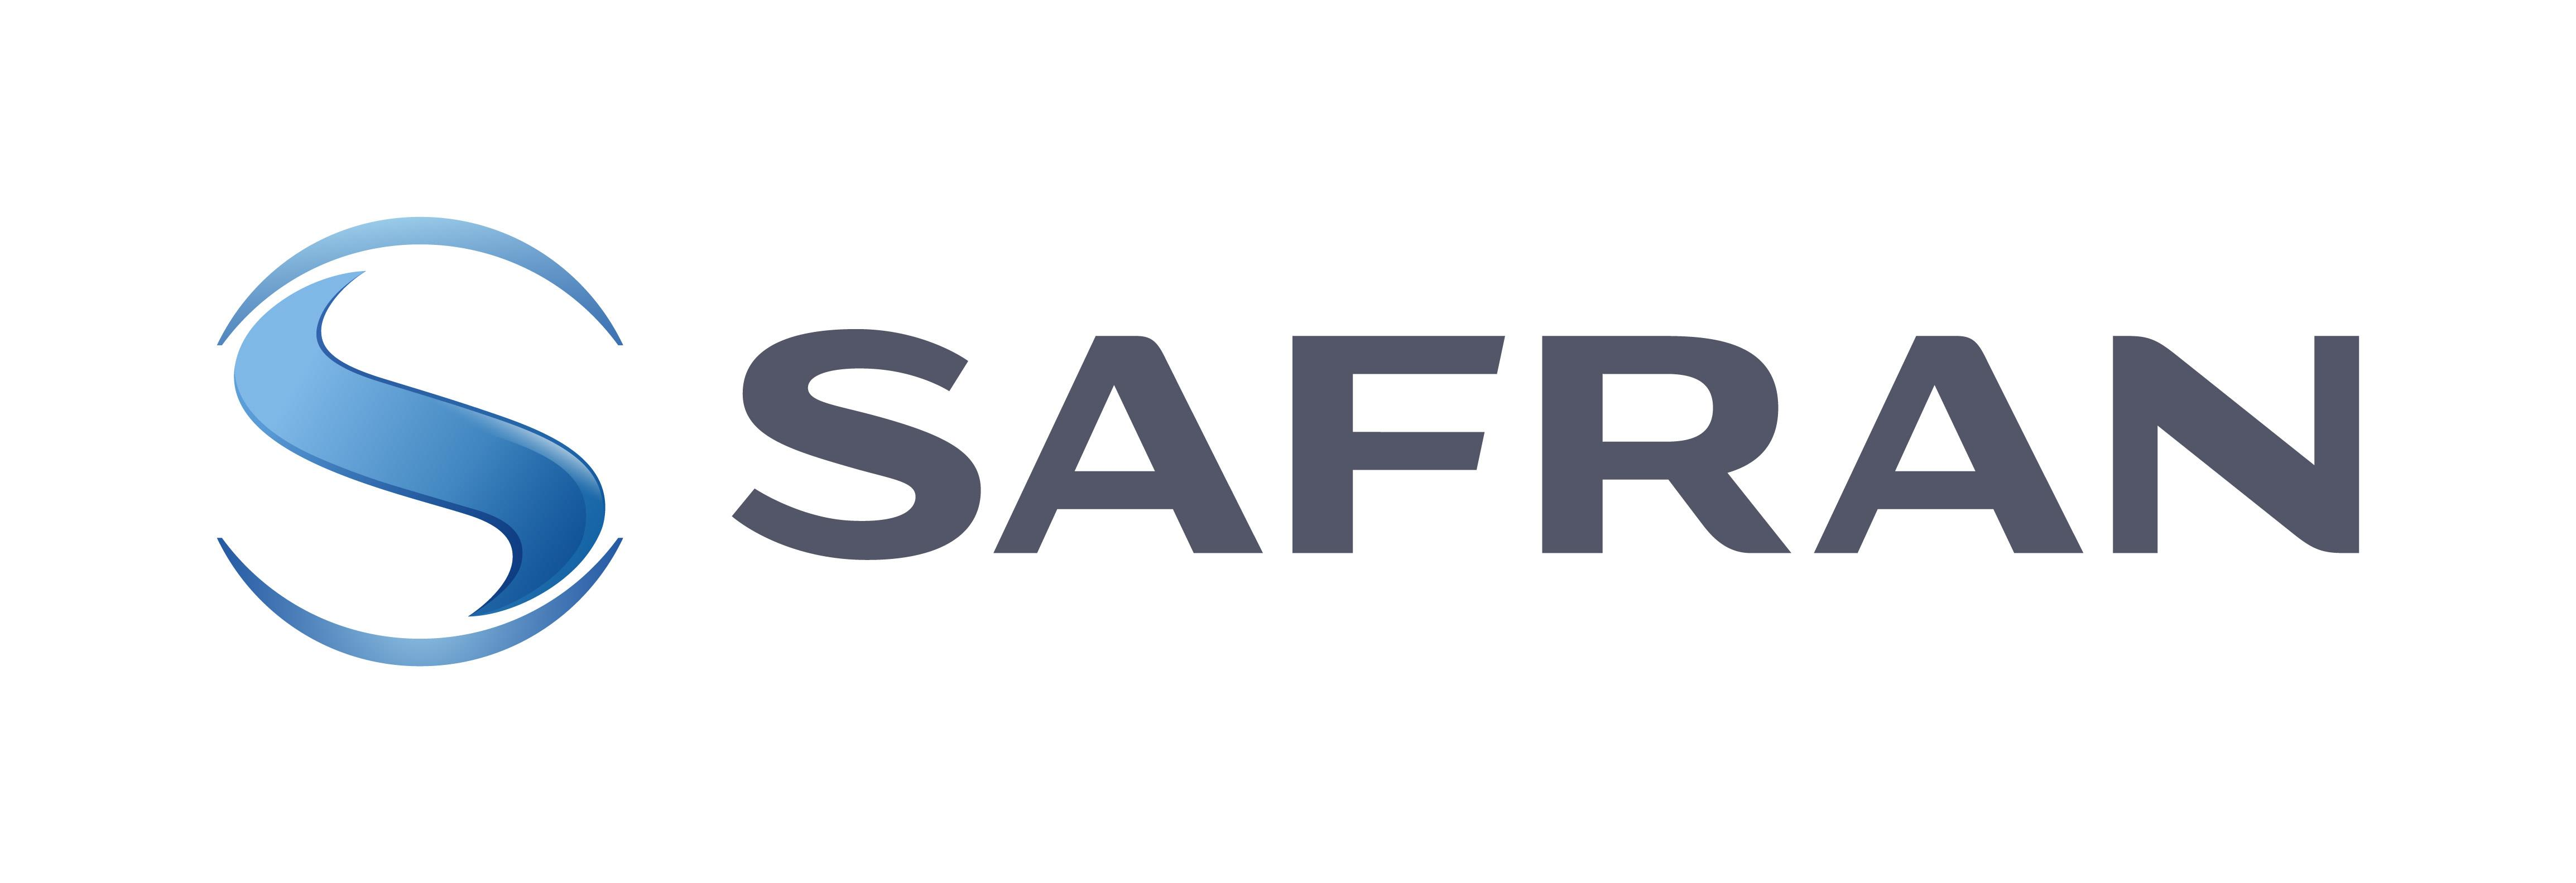 SAFRAN ELECTRONICS & DEFENSE